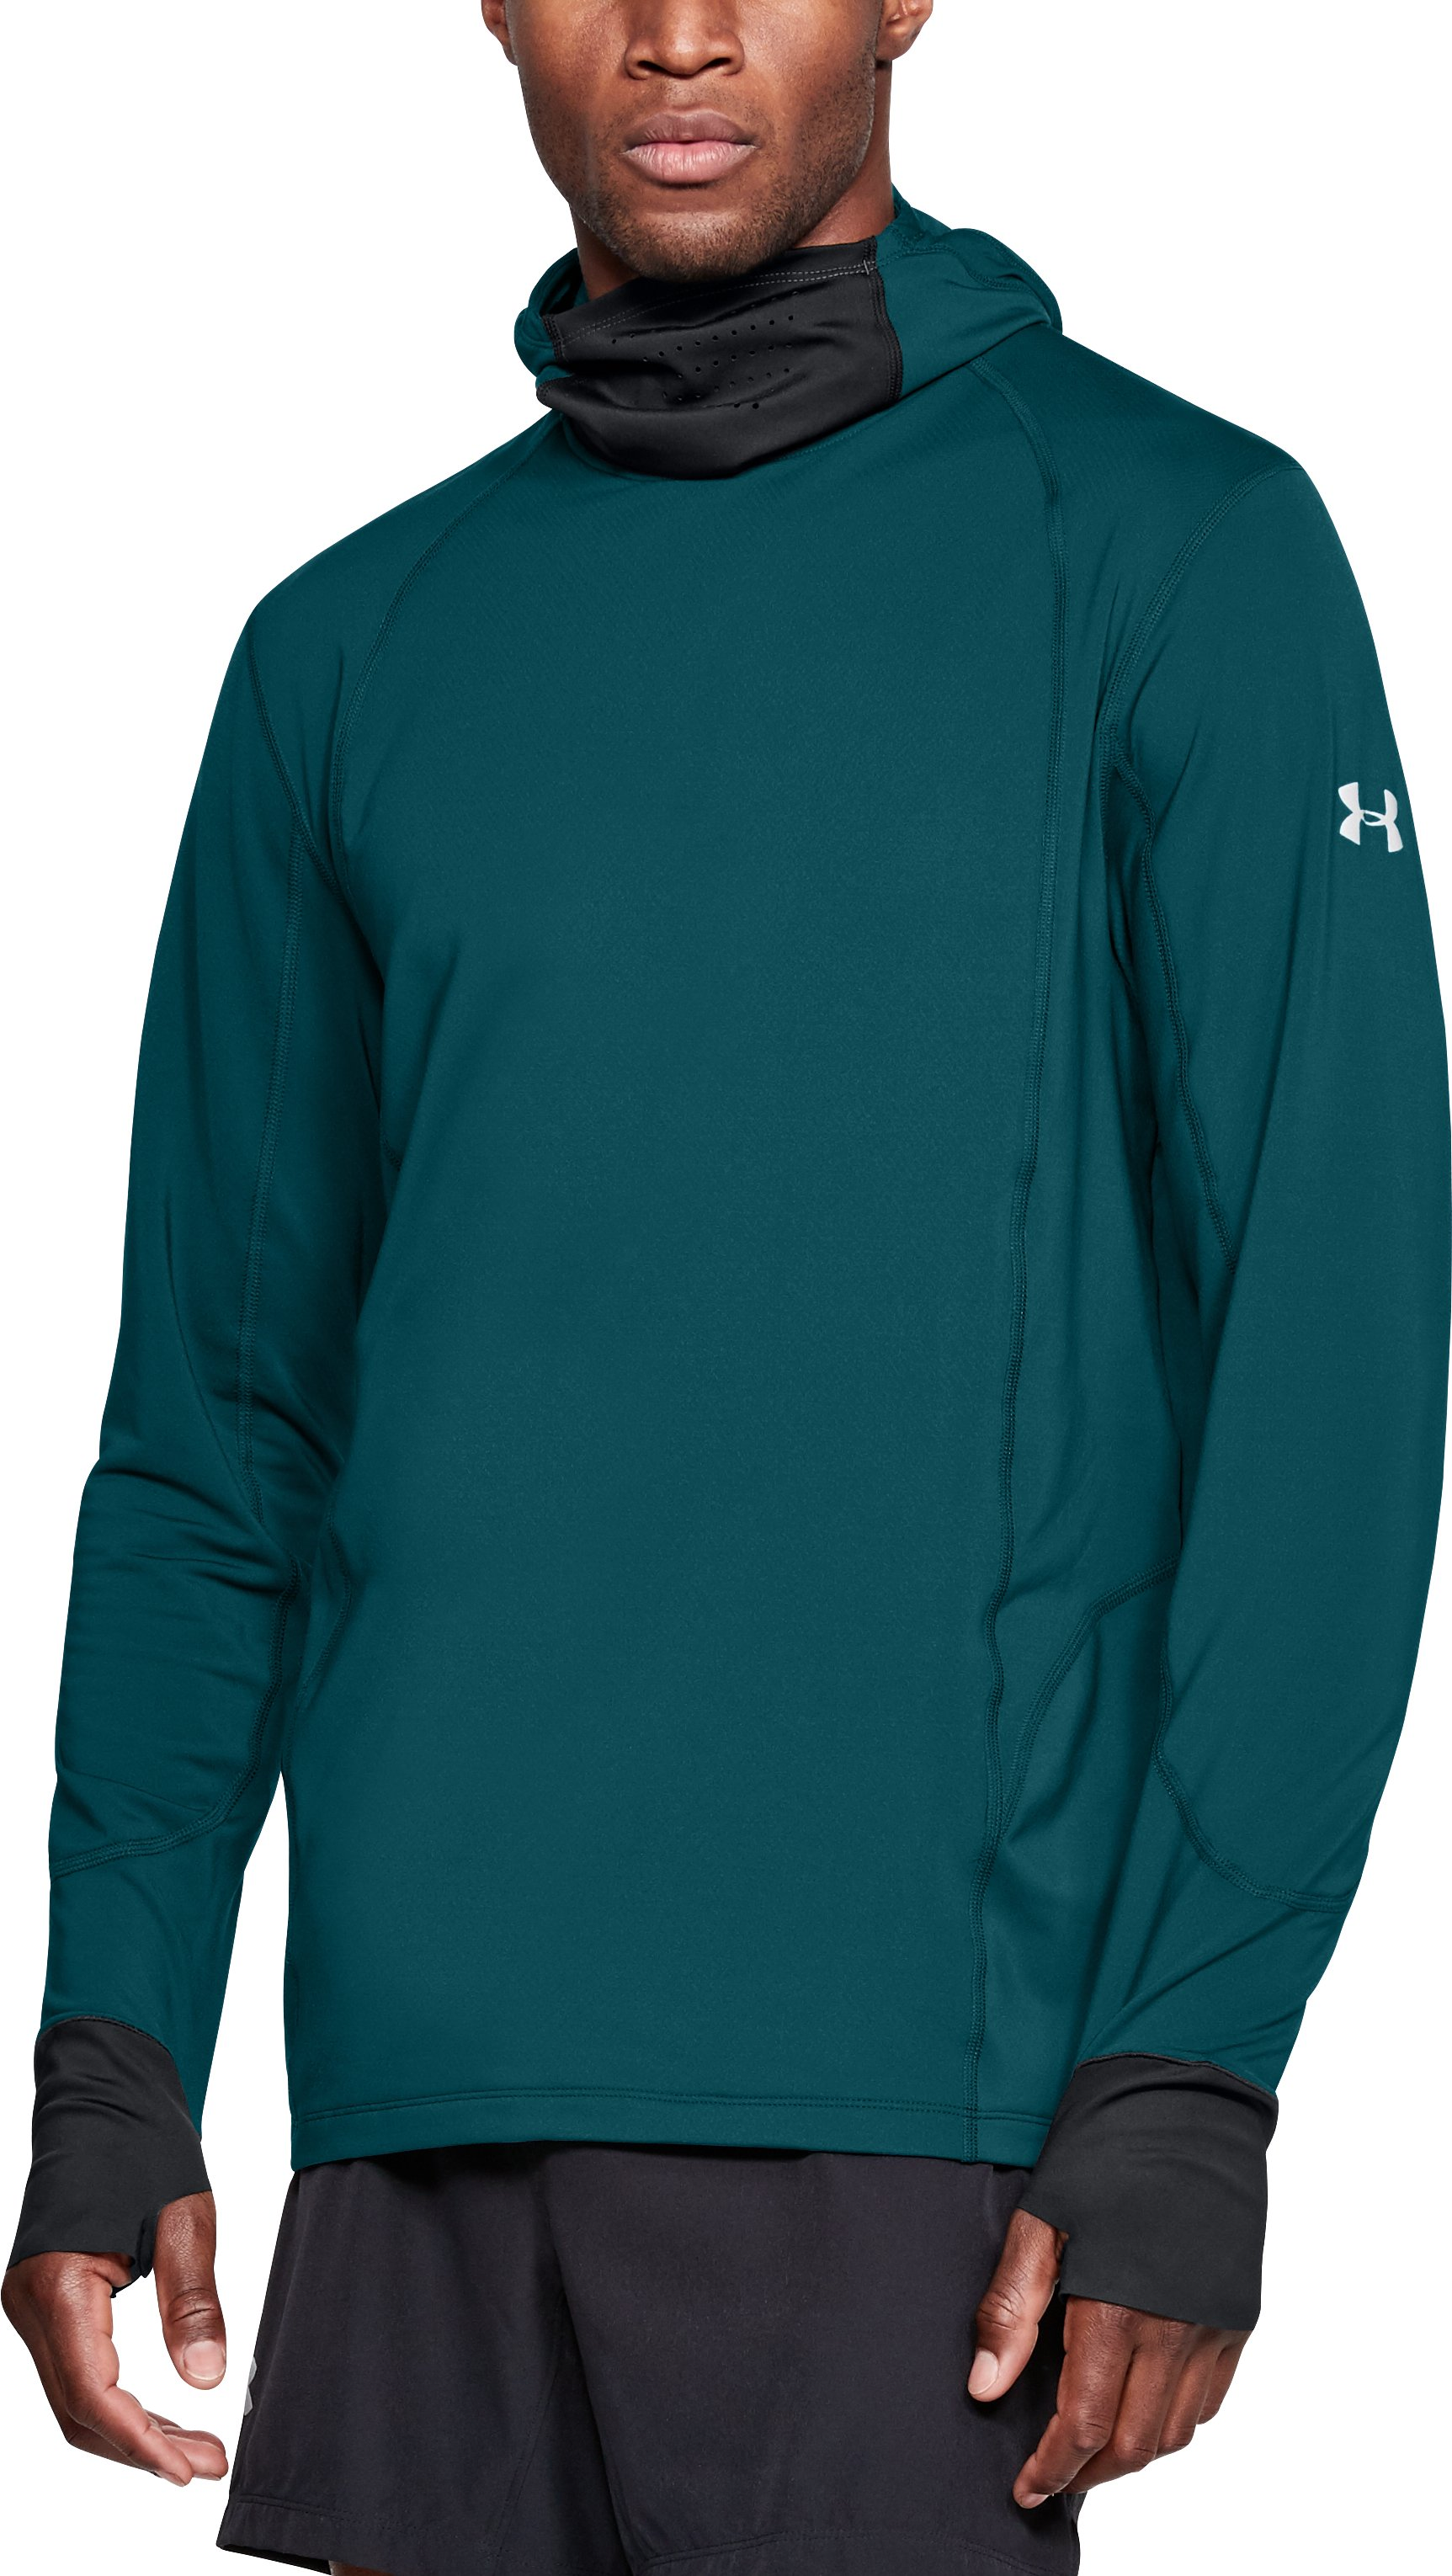 Men's ColdGear® Reactor Run Balaclava Hoodie, TOURMALINE TEAL